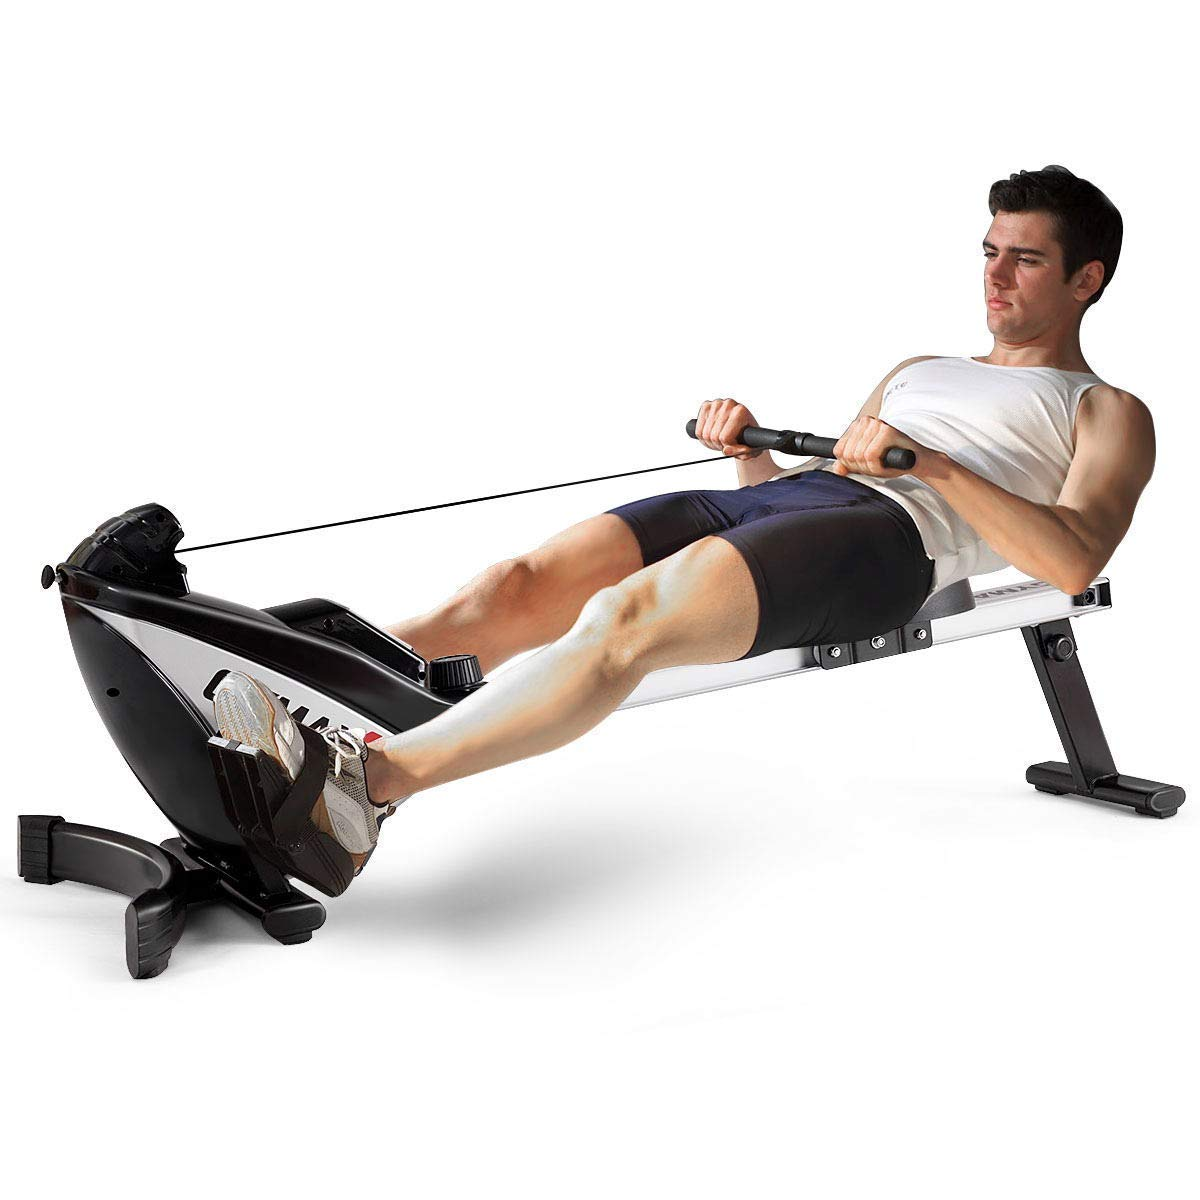 Goplus Magnetic Rowing Machine – Overall Best Of The Rowing Machines Under 500 Dollars